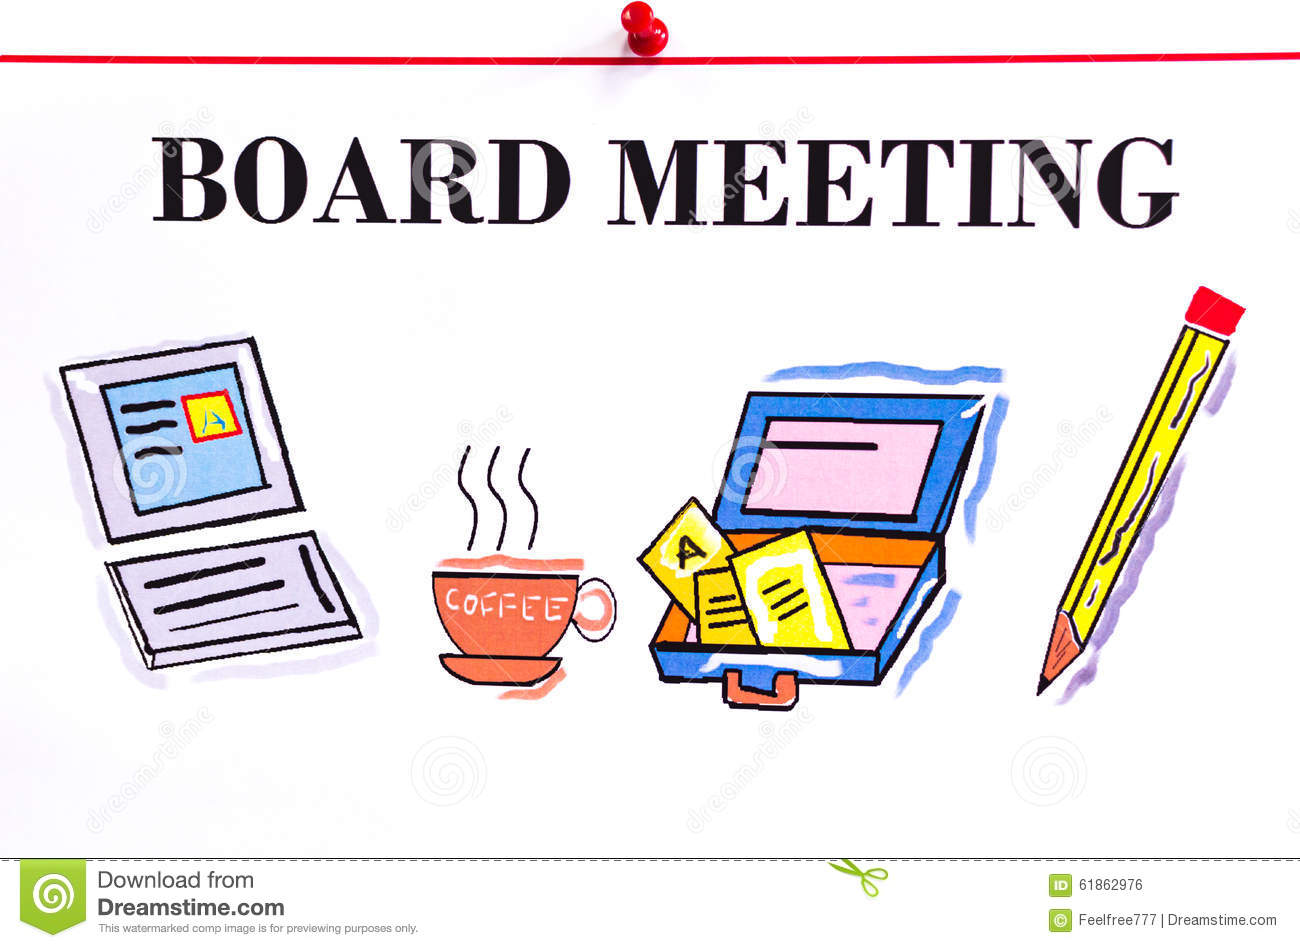 Board meeting stock illustration. Illustration of clear - 61862976